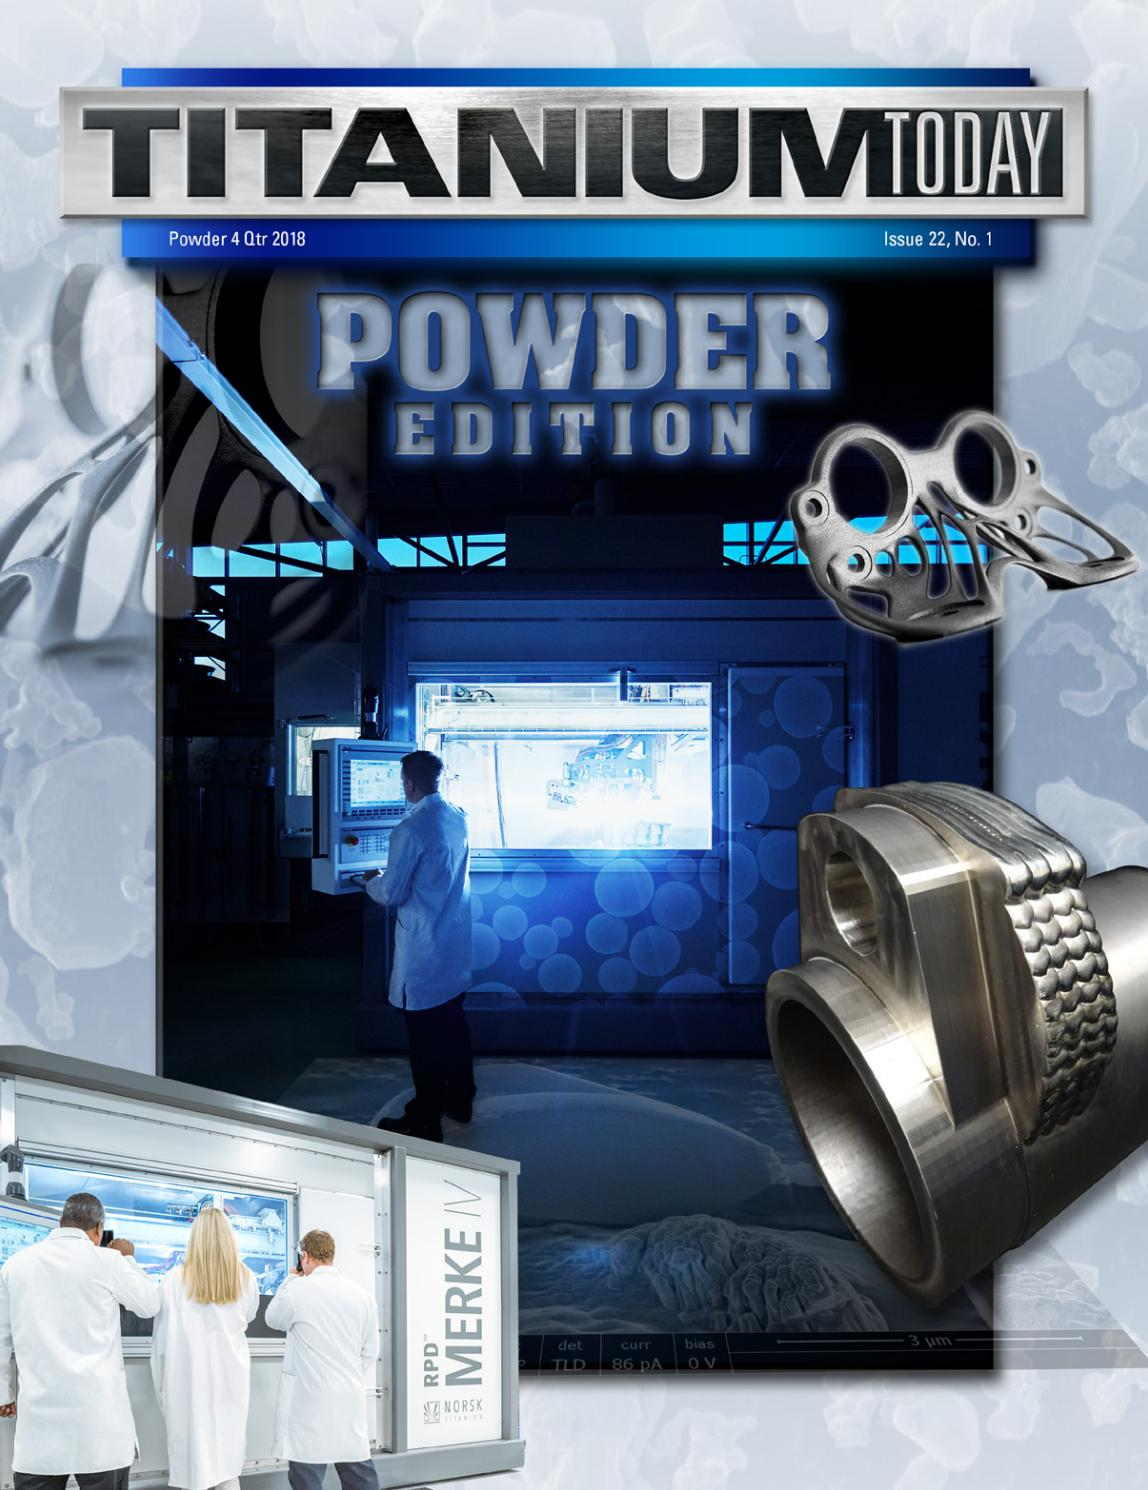 TITANIUM TODAY - Powder Edition 2018 by TITANIUMTODAY - issuu